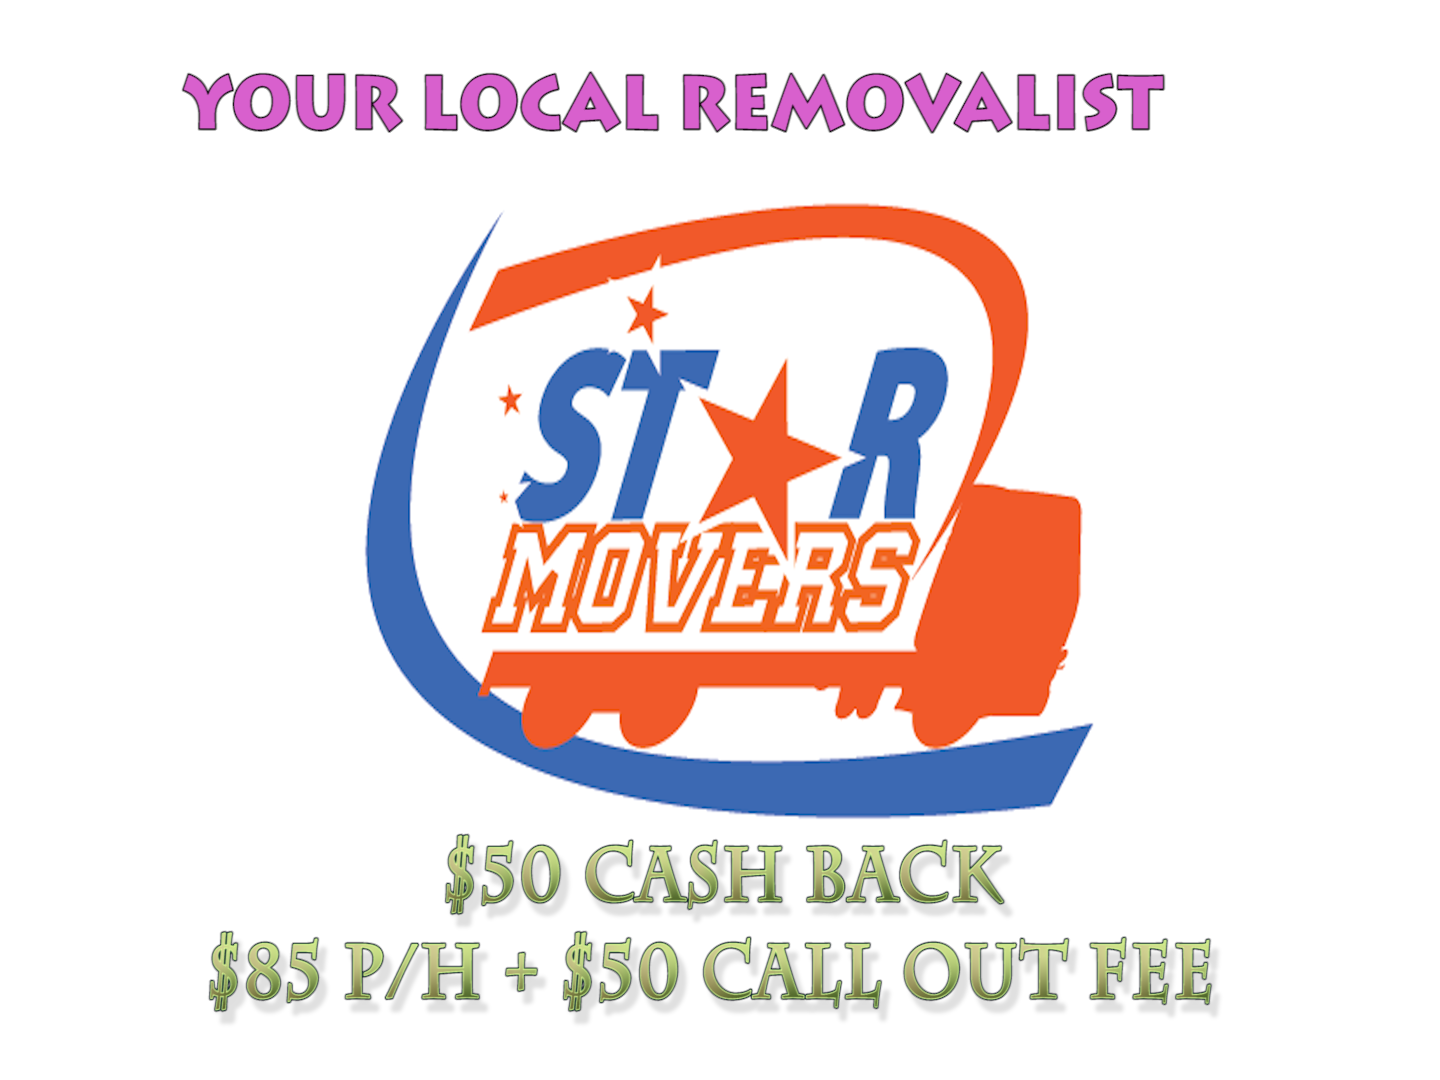 STAR MOVERS2B